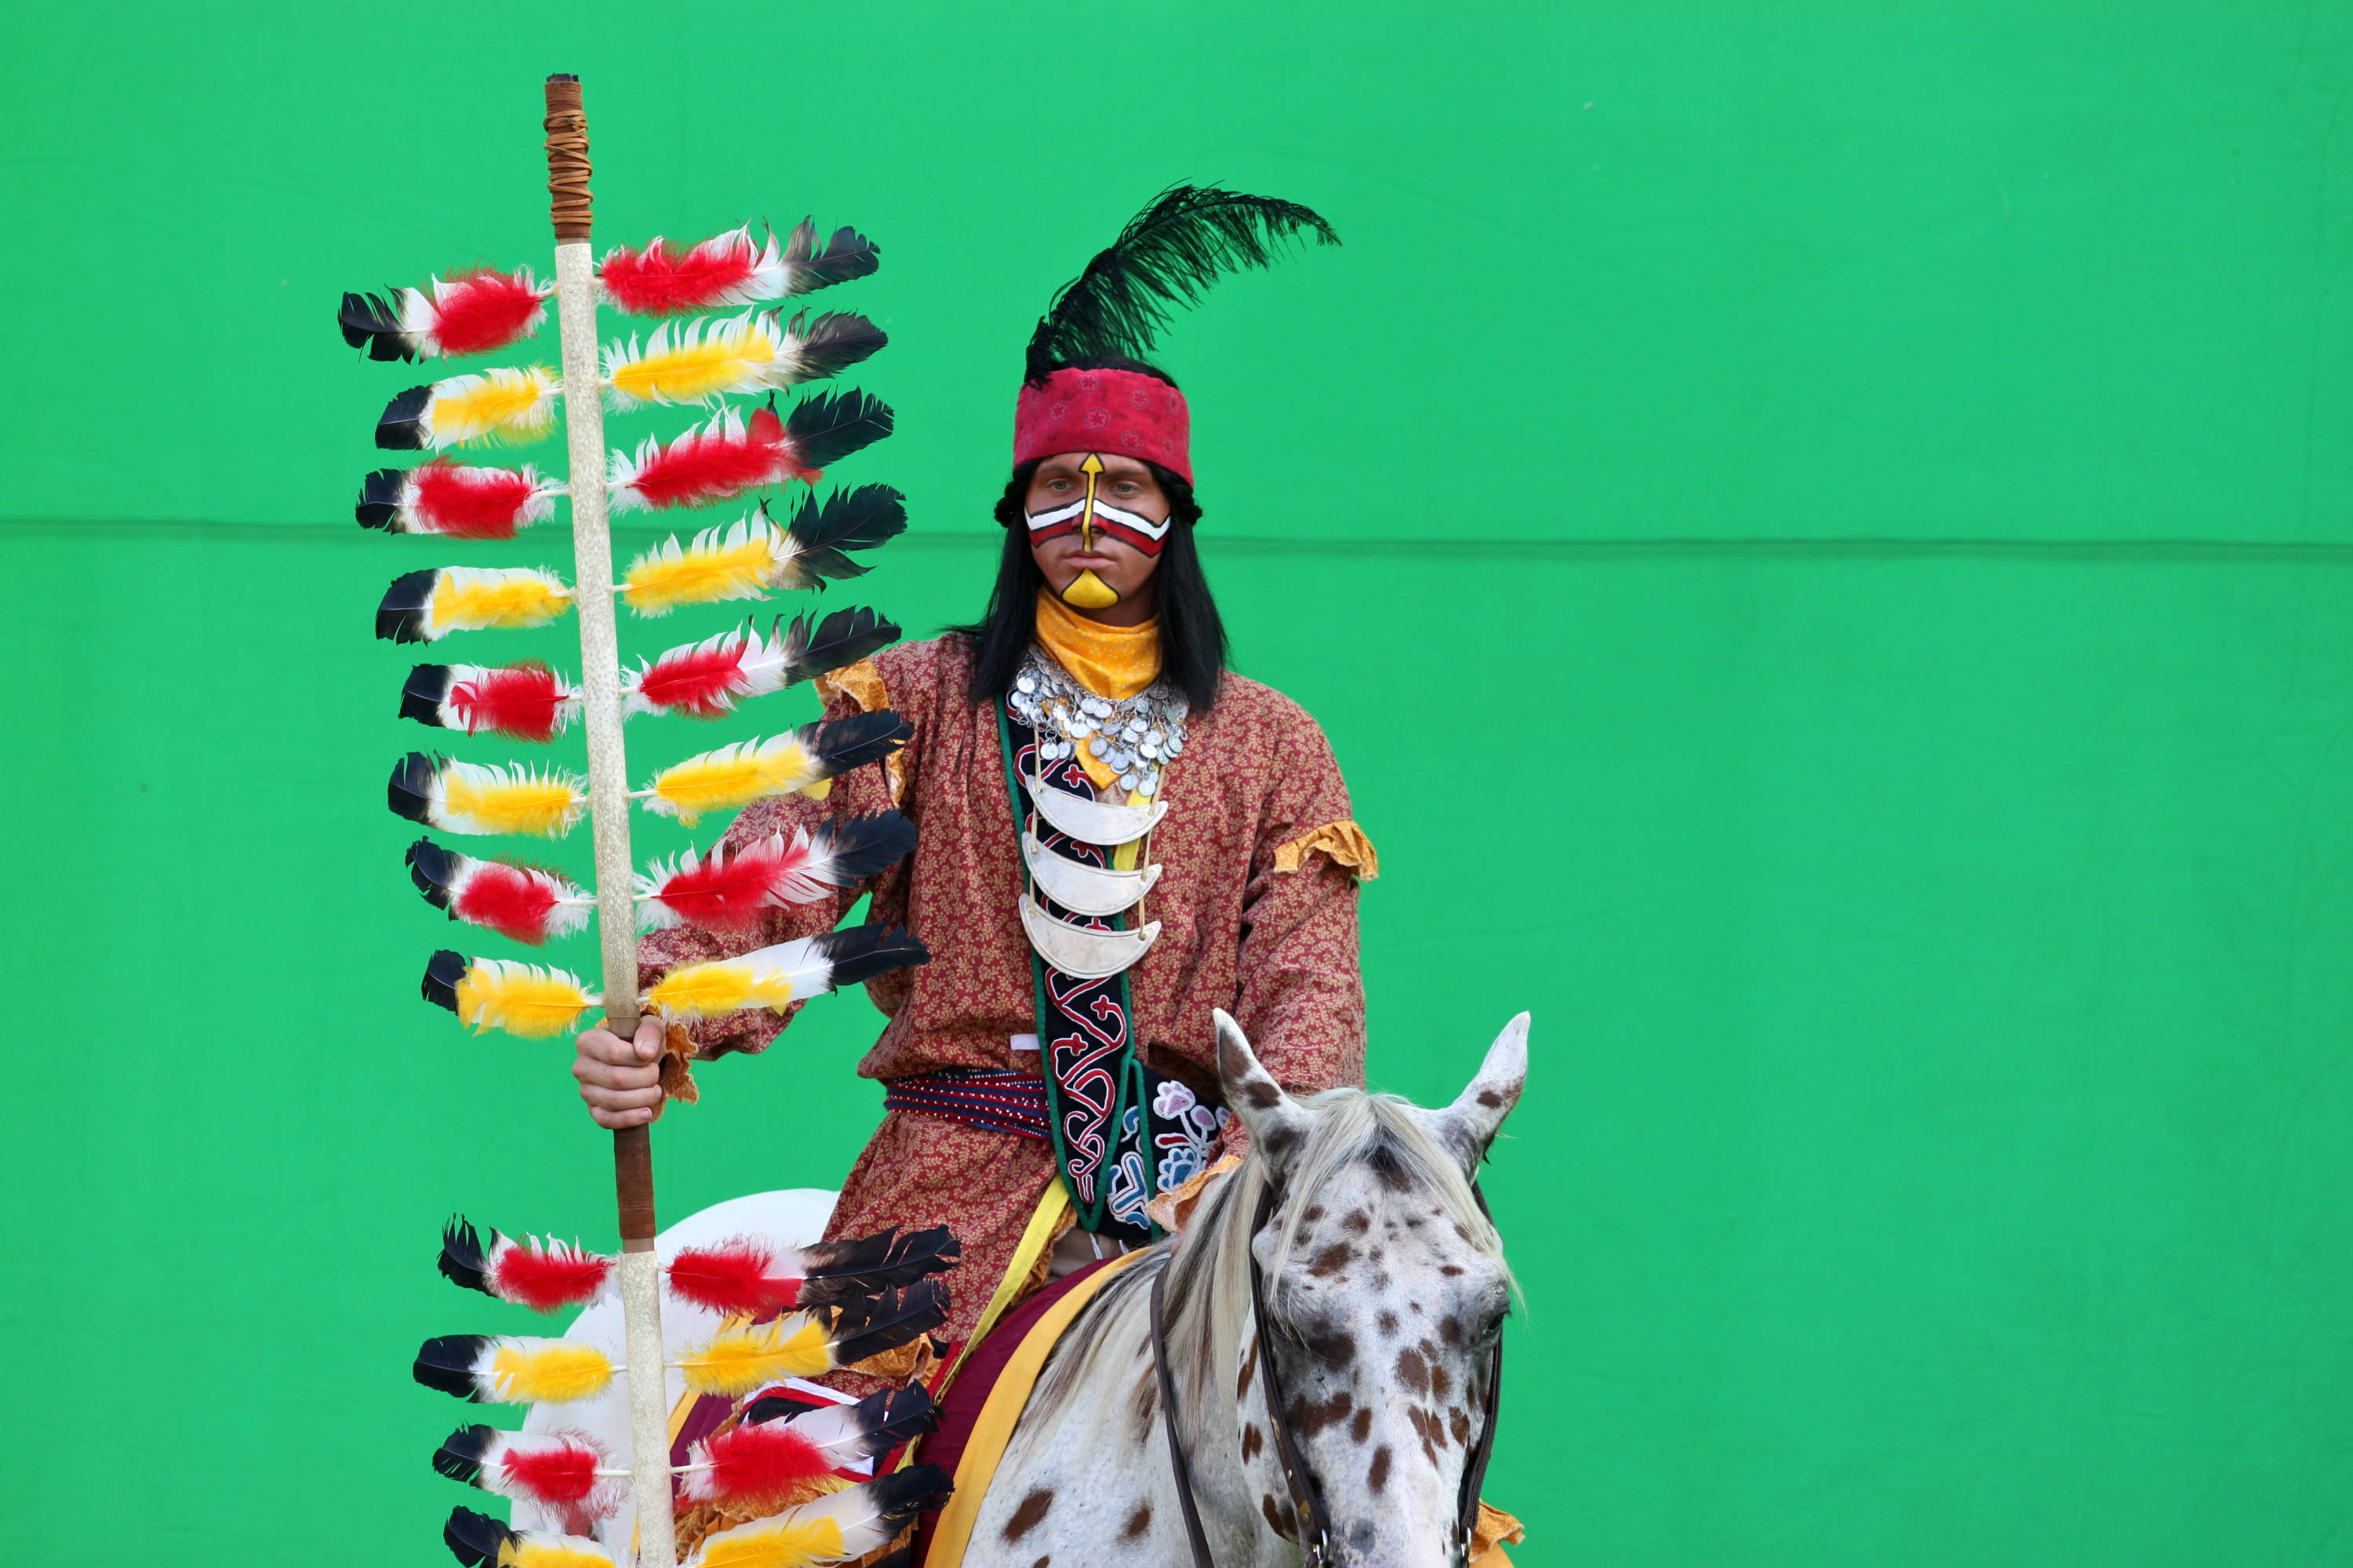 Chief Osceola and Renegade being shot on the green screen for Seminole Productions.